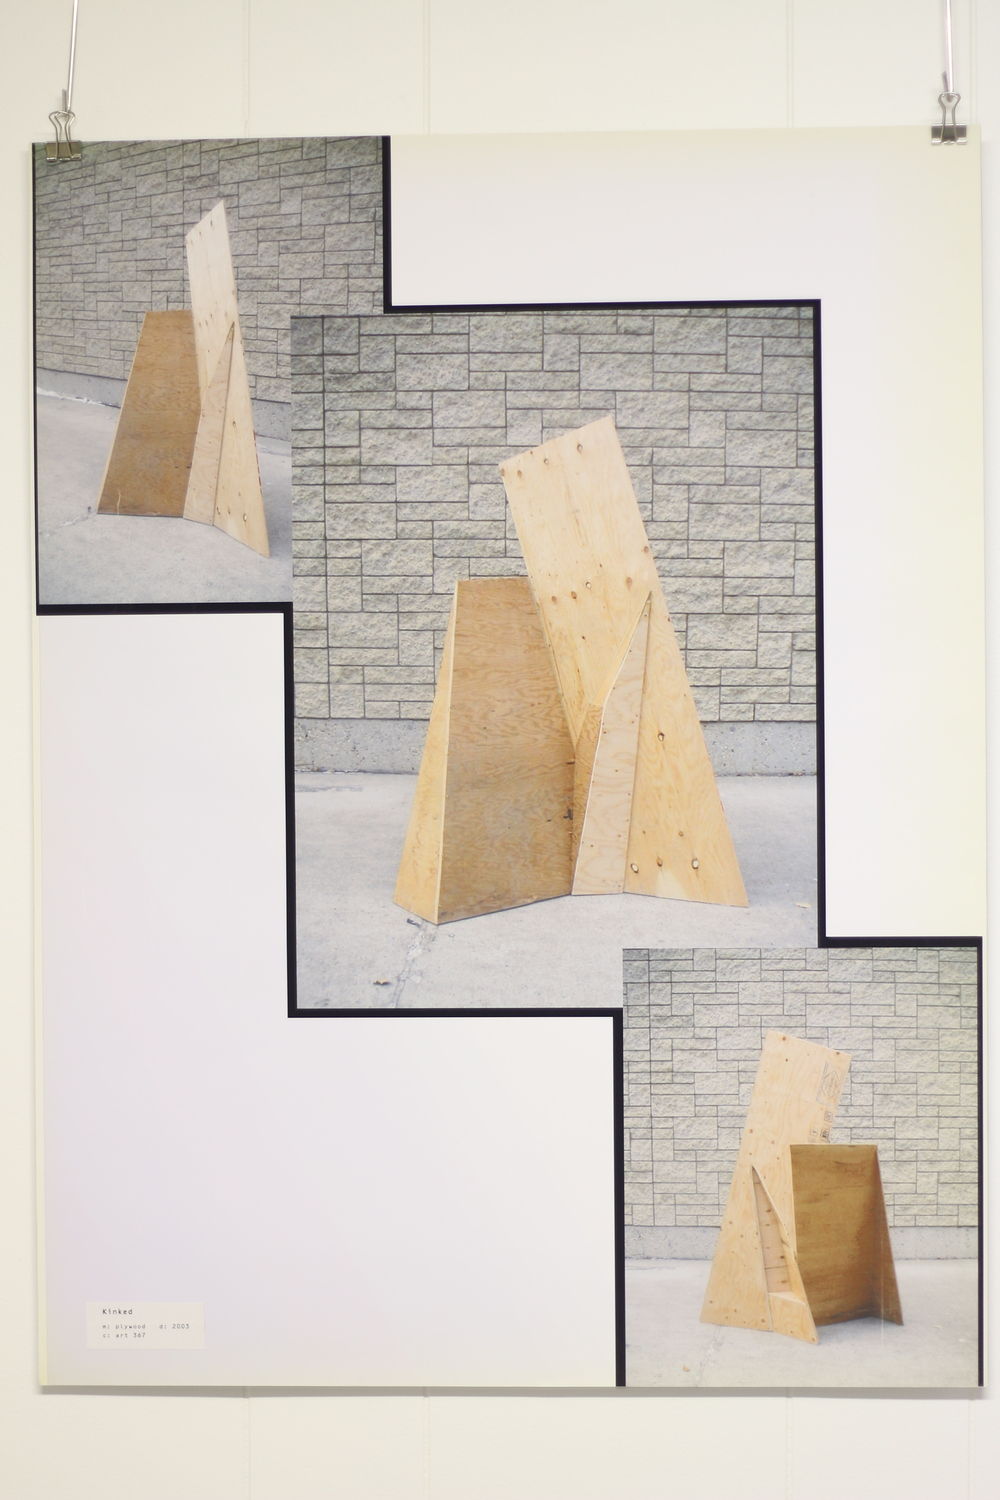 Kinked, 2003, Plywood, Art 367